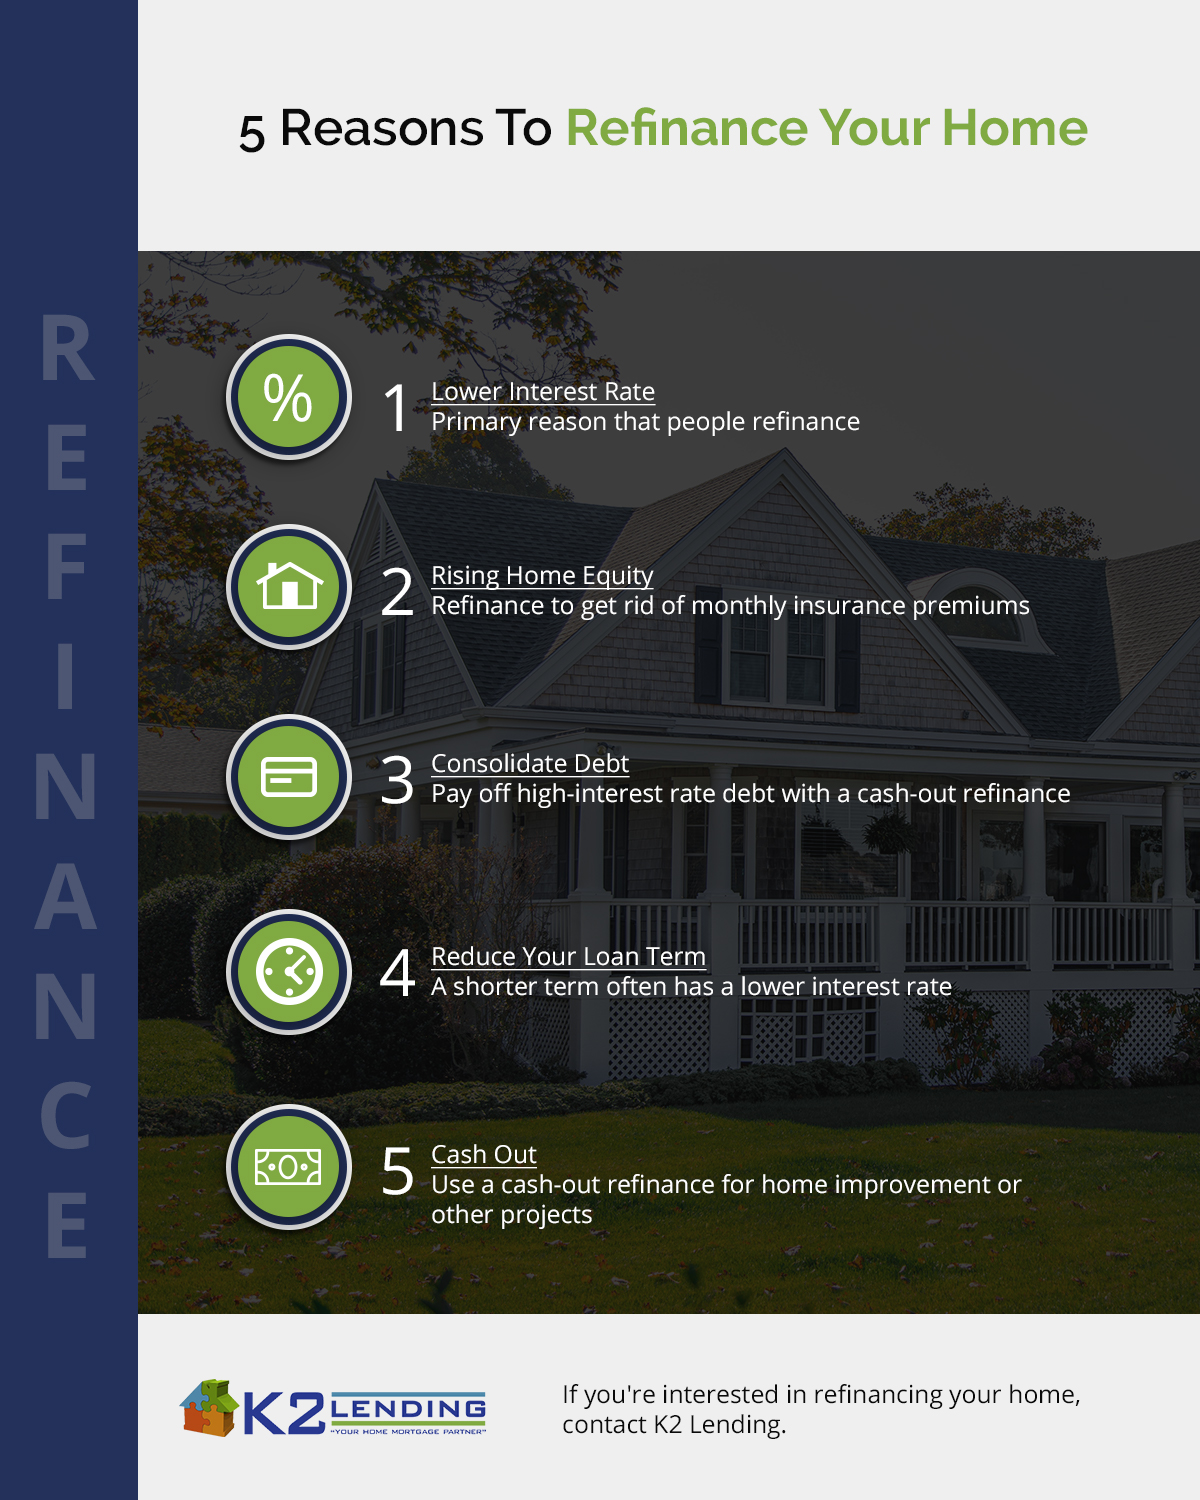 5 Reasons to Refinance Your Home